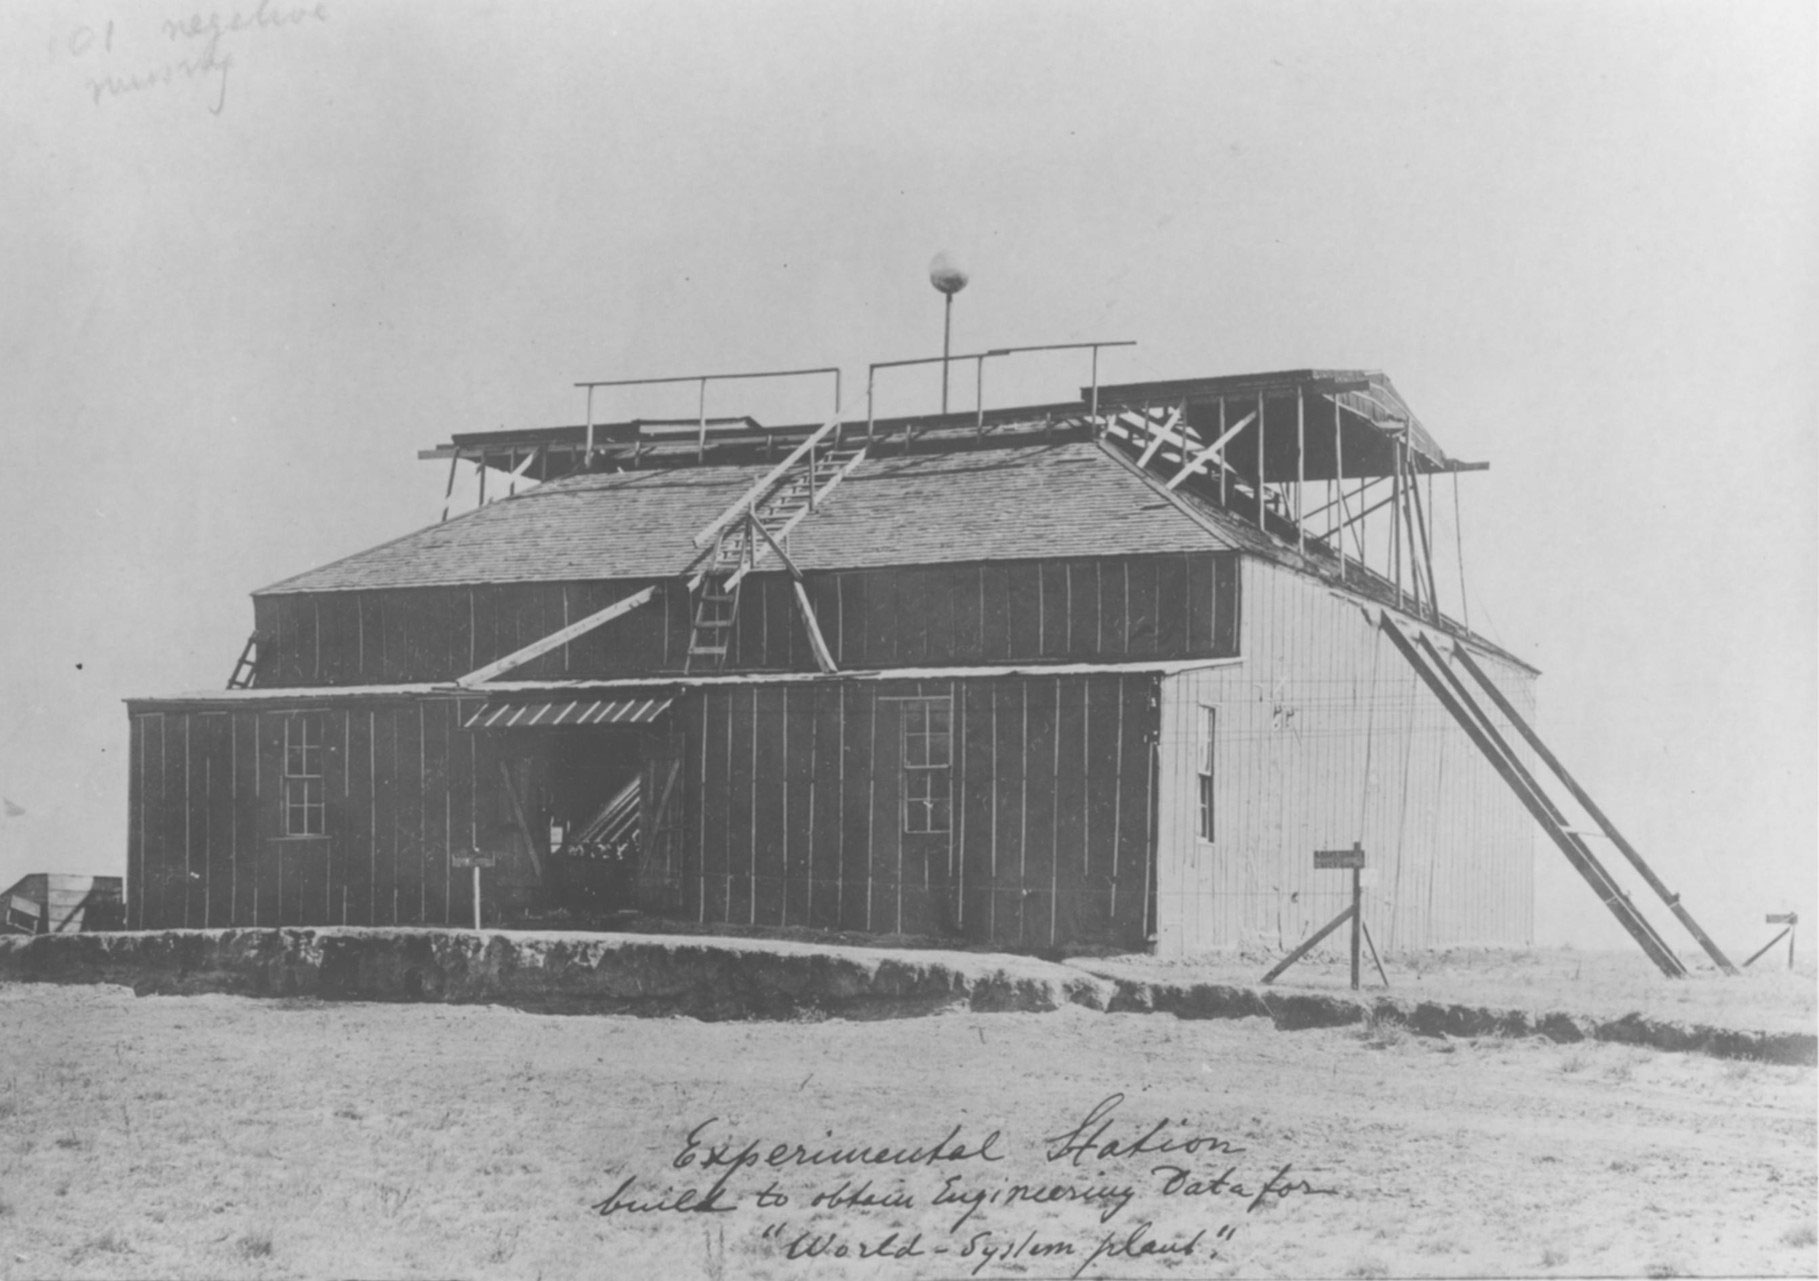 Colorado Springs Laboratory 1899 1900 Open Tesla Research Teslawirelesspowercircuitjpg At His Lab Proved That The Earth Was A Conductor And He Produced Artificial Lightning With Discharges Consisting Of Millions Volts